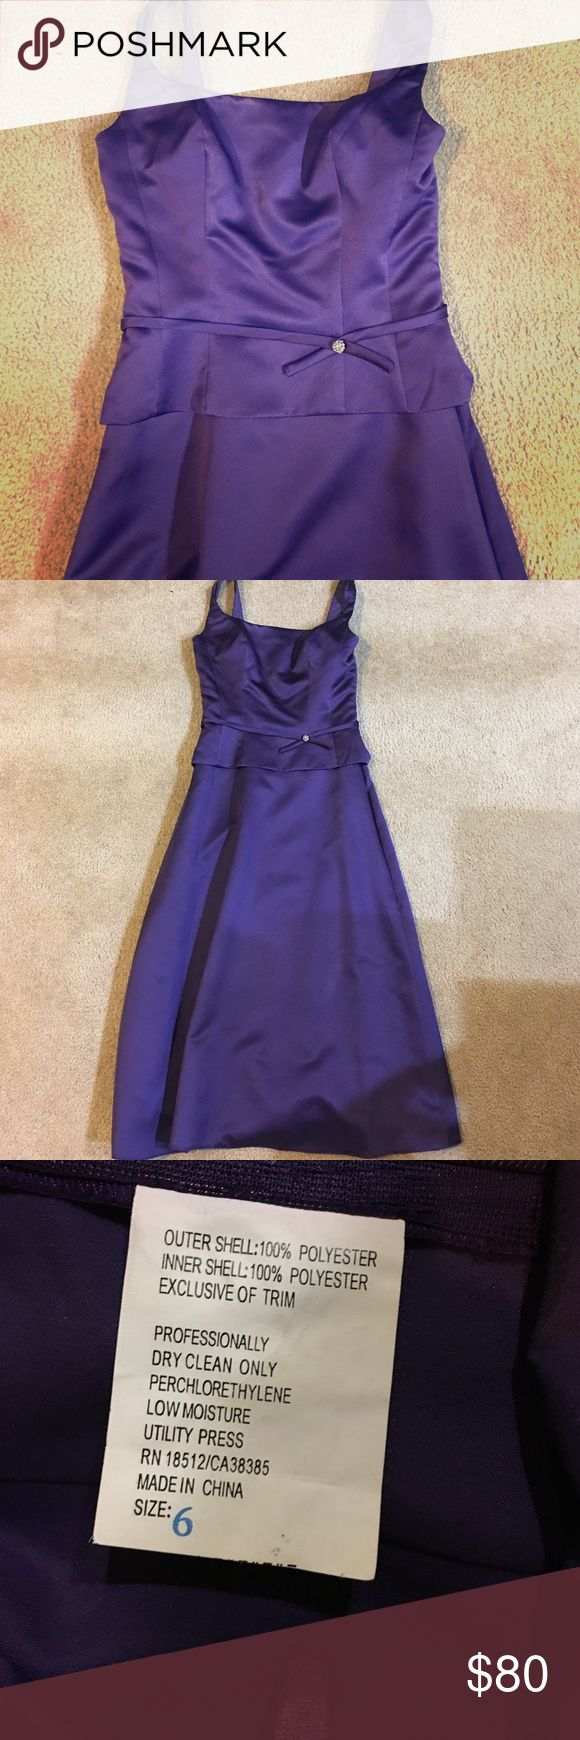 rich purple tea-length bridesmaid gown Only worn once! Rich purple sateen midi length gown with sparkle detail at waist belt. Skirt is approx 30 inches from the waist, thick straps make it easy to wear a bra! Dresses Midi